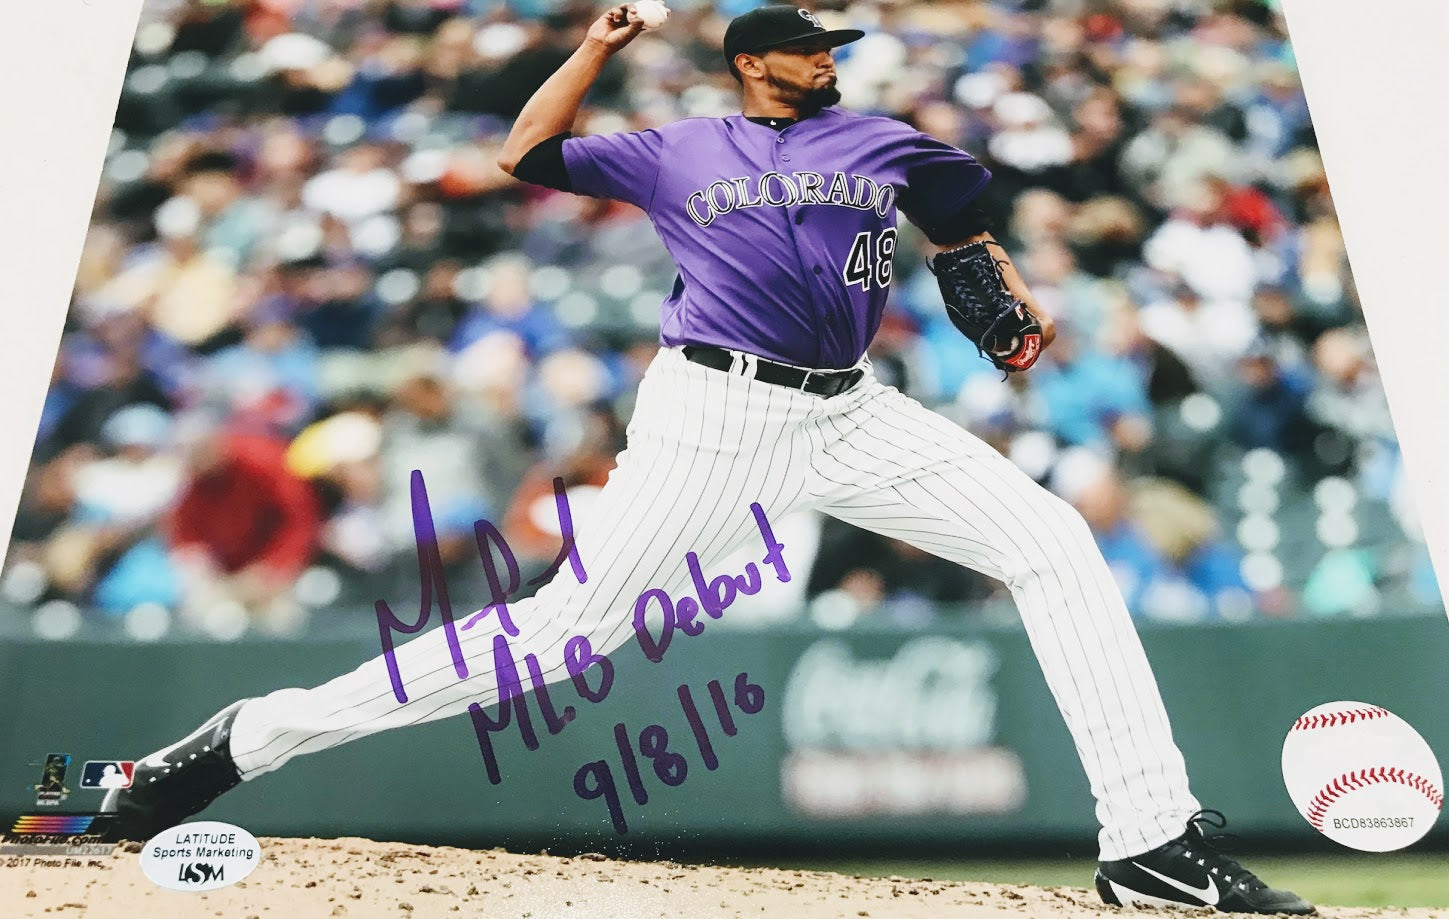 German Marquez Signed MLB Debut 9/8/16 8x10 - Latitude Sports Marketing